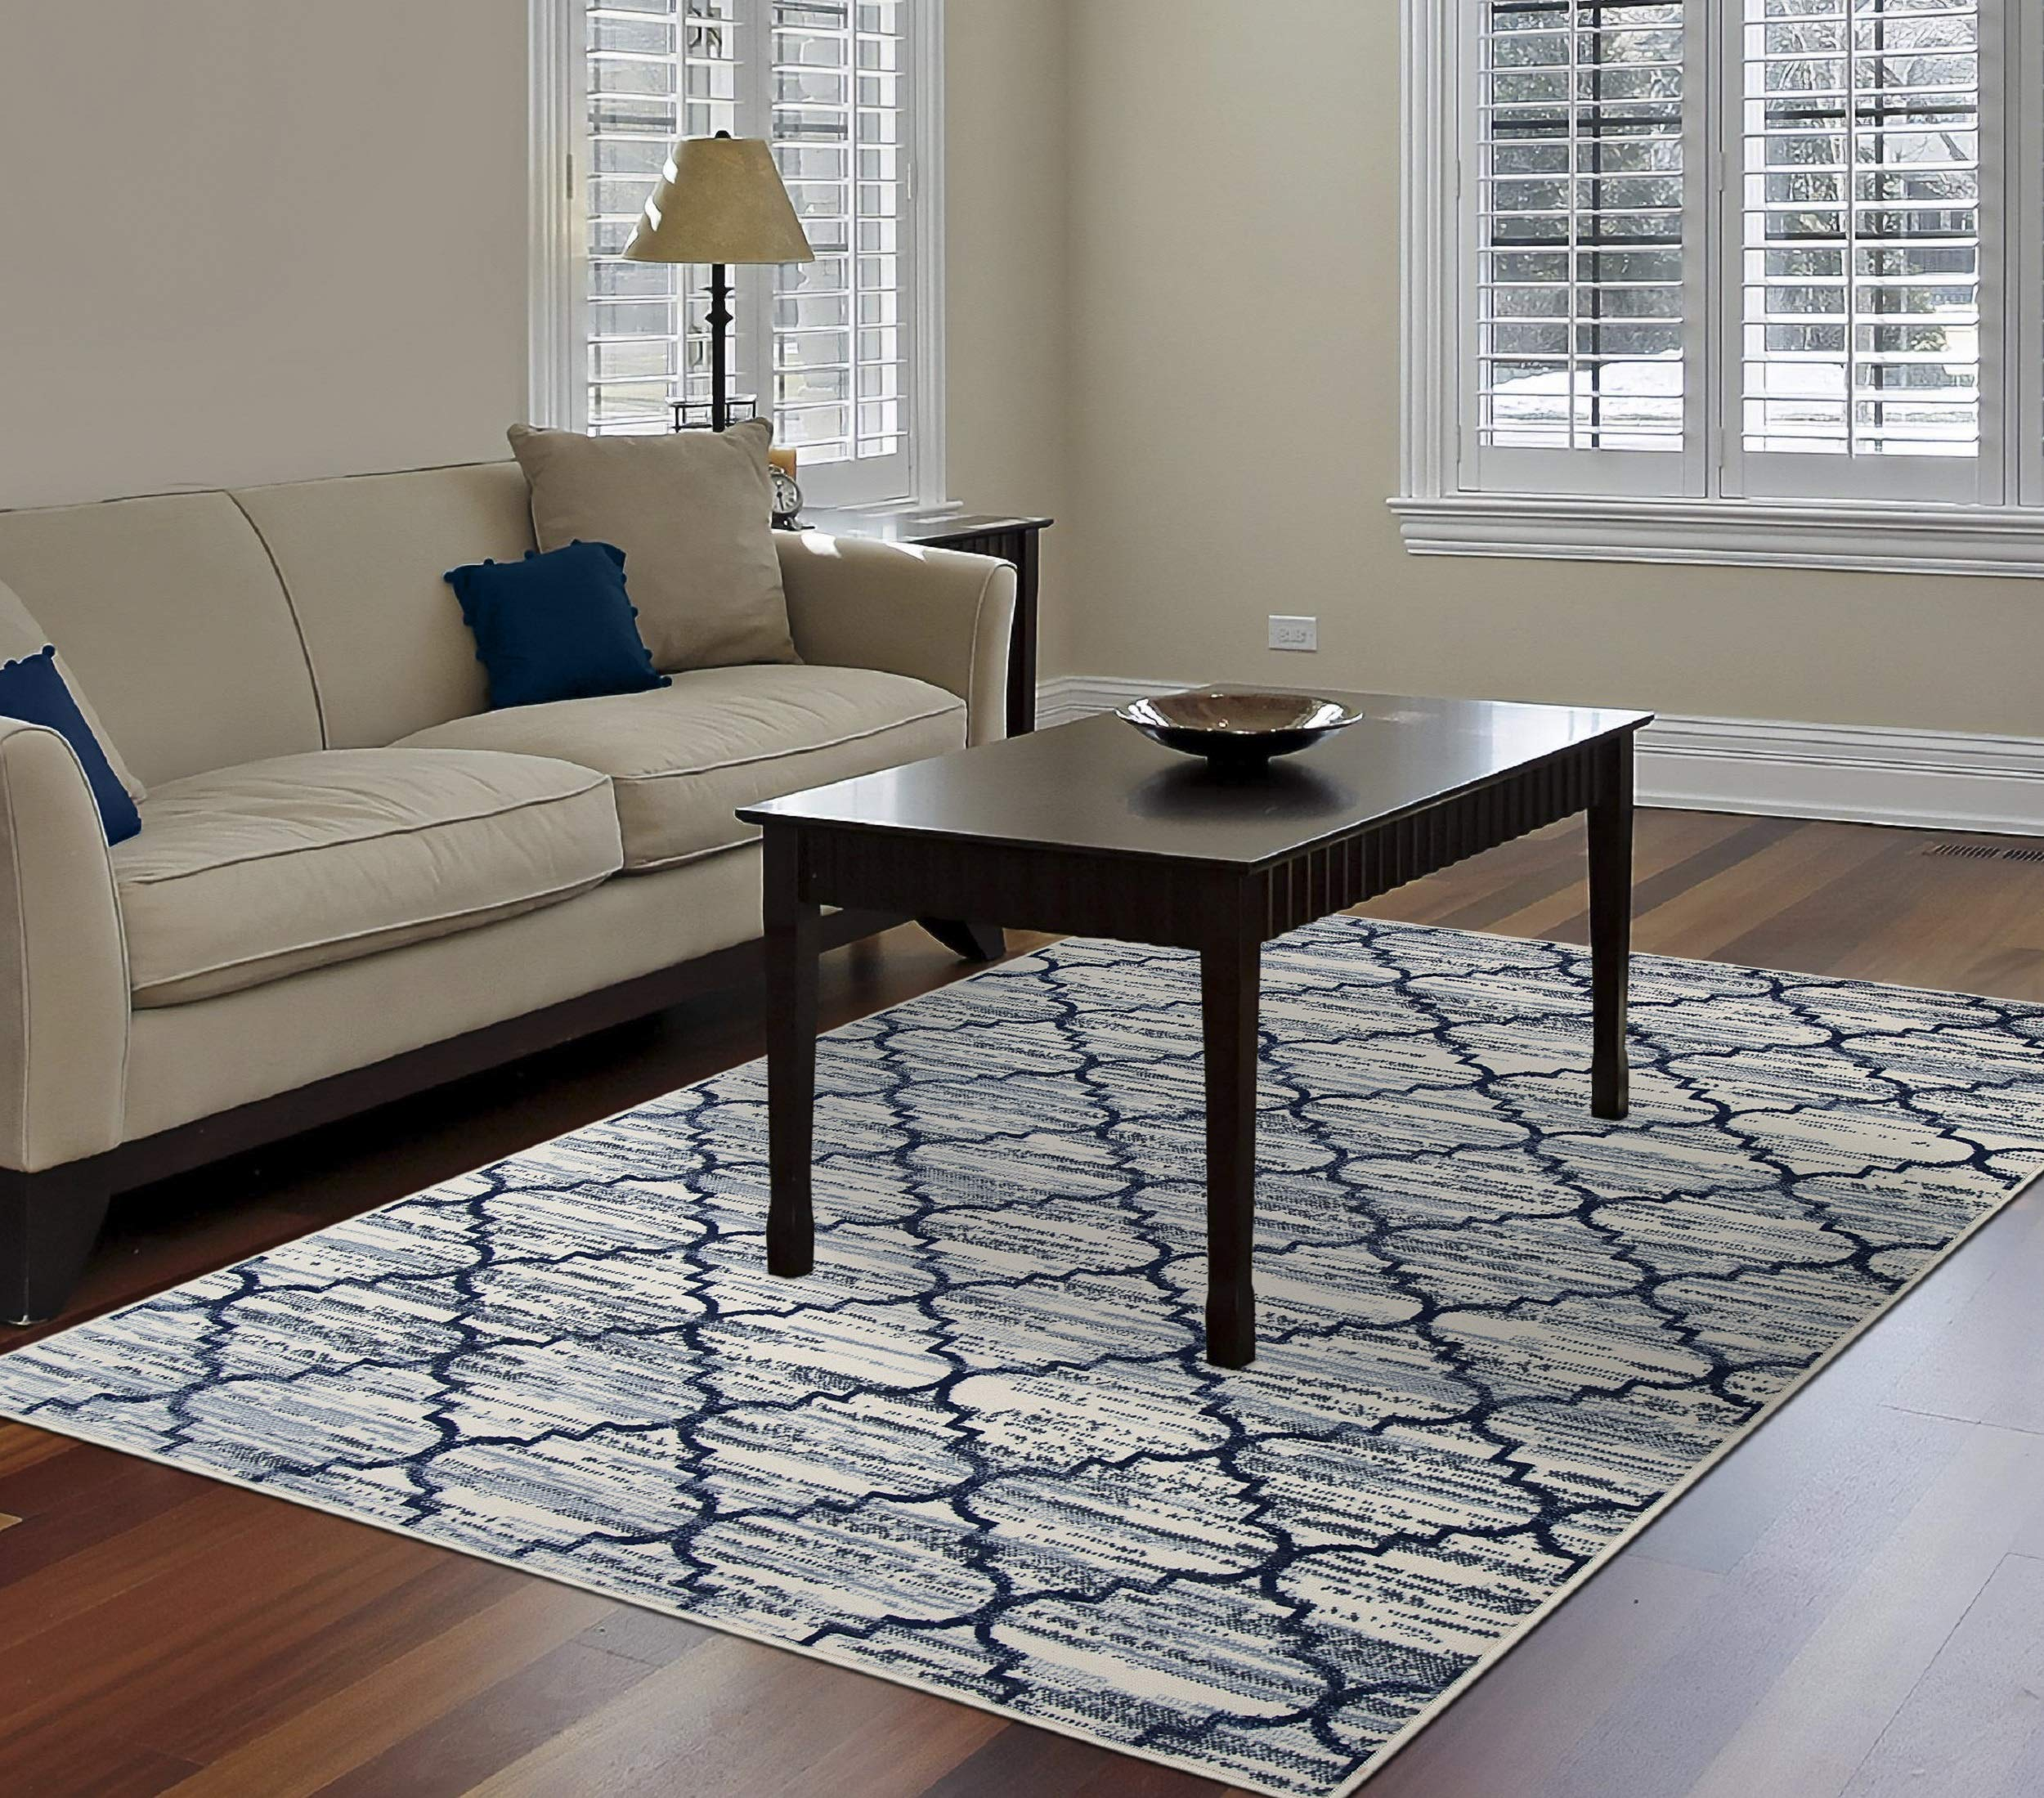 PRIYATE Colorado Collection Moroccan Lattice Area Rug - Polypropylene, Non Slippery, Water Repellent for Indoor, Floor Carpets, Foyer, Living, Dining and Bedroom (Ivory, Size : 240 X 305)